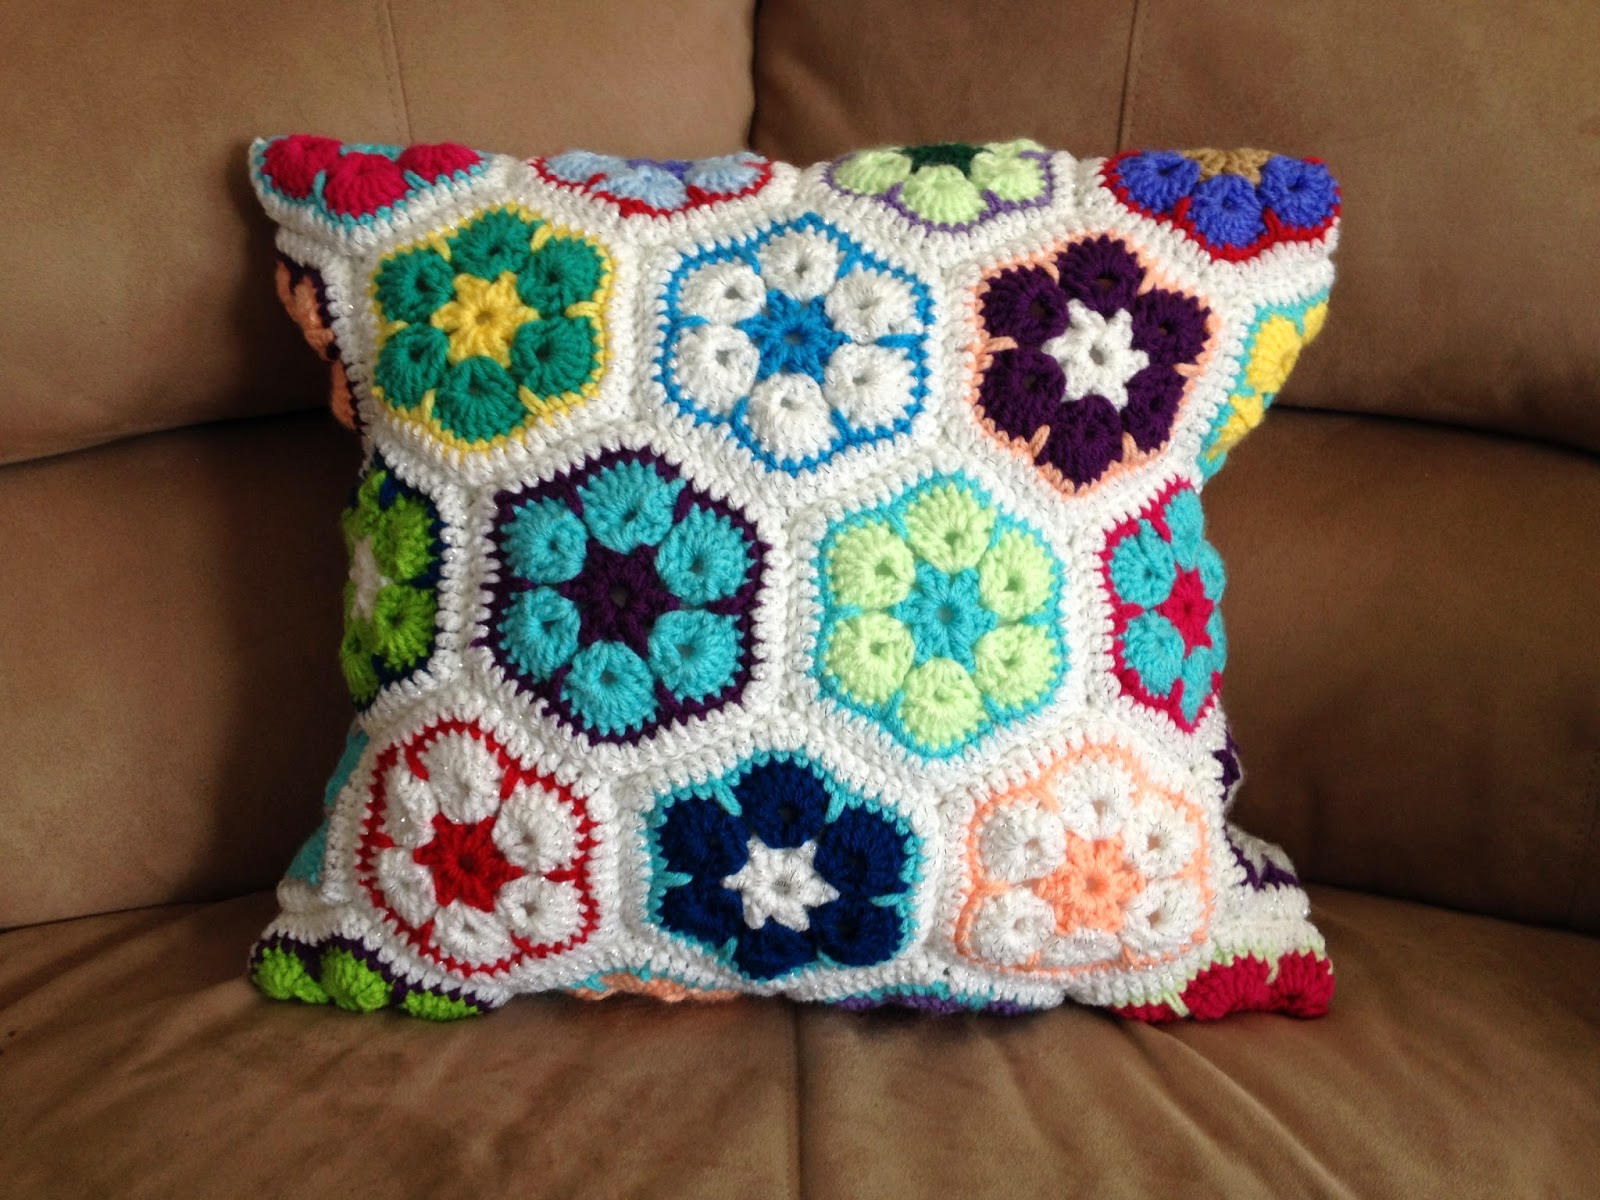 My Crocheted World: African Flower Pillowcase Free Instructions and ...